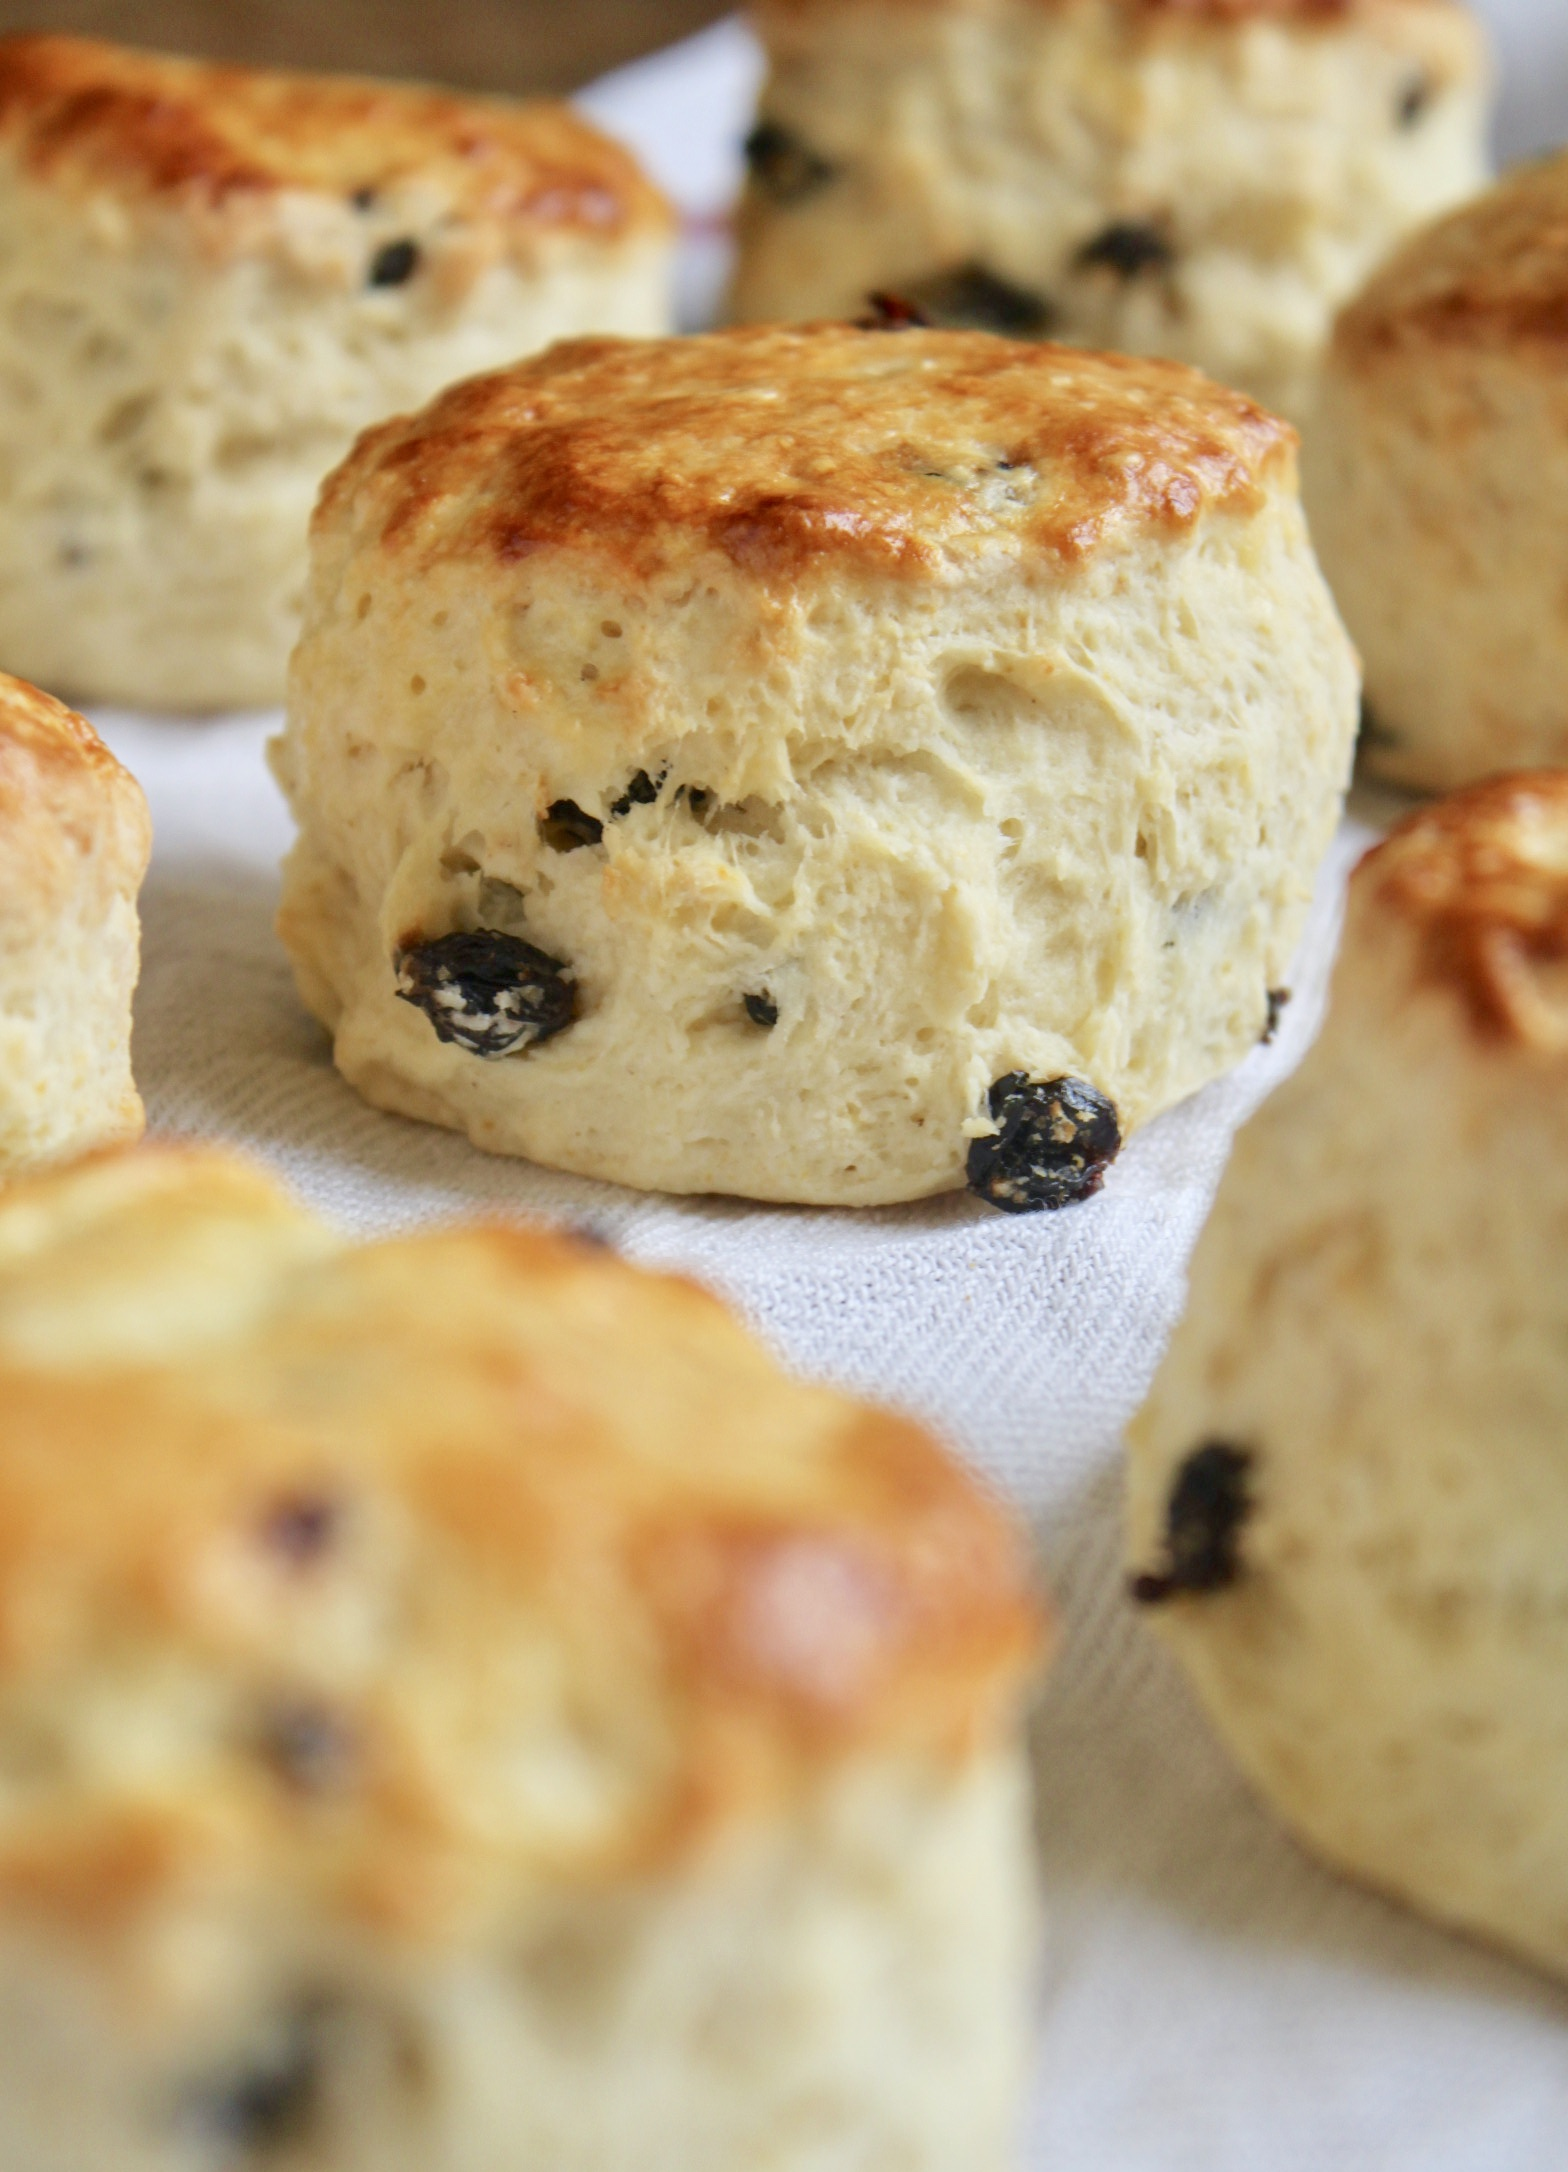 sultana or raisin scones